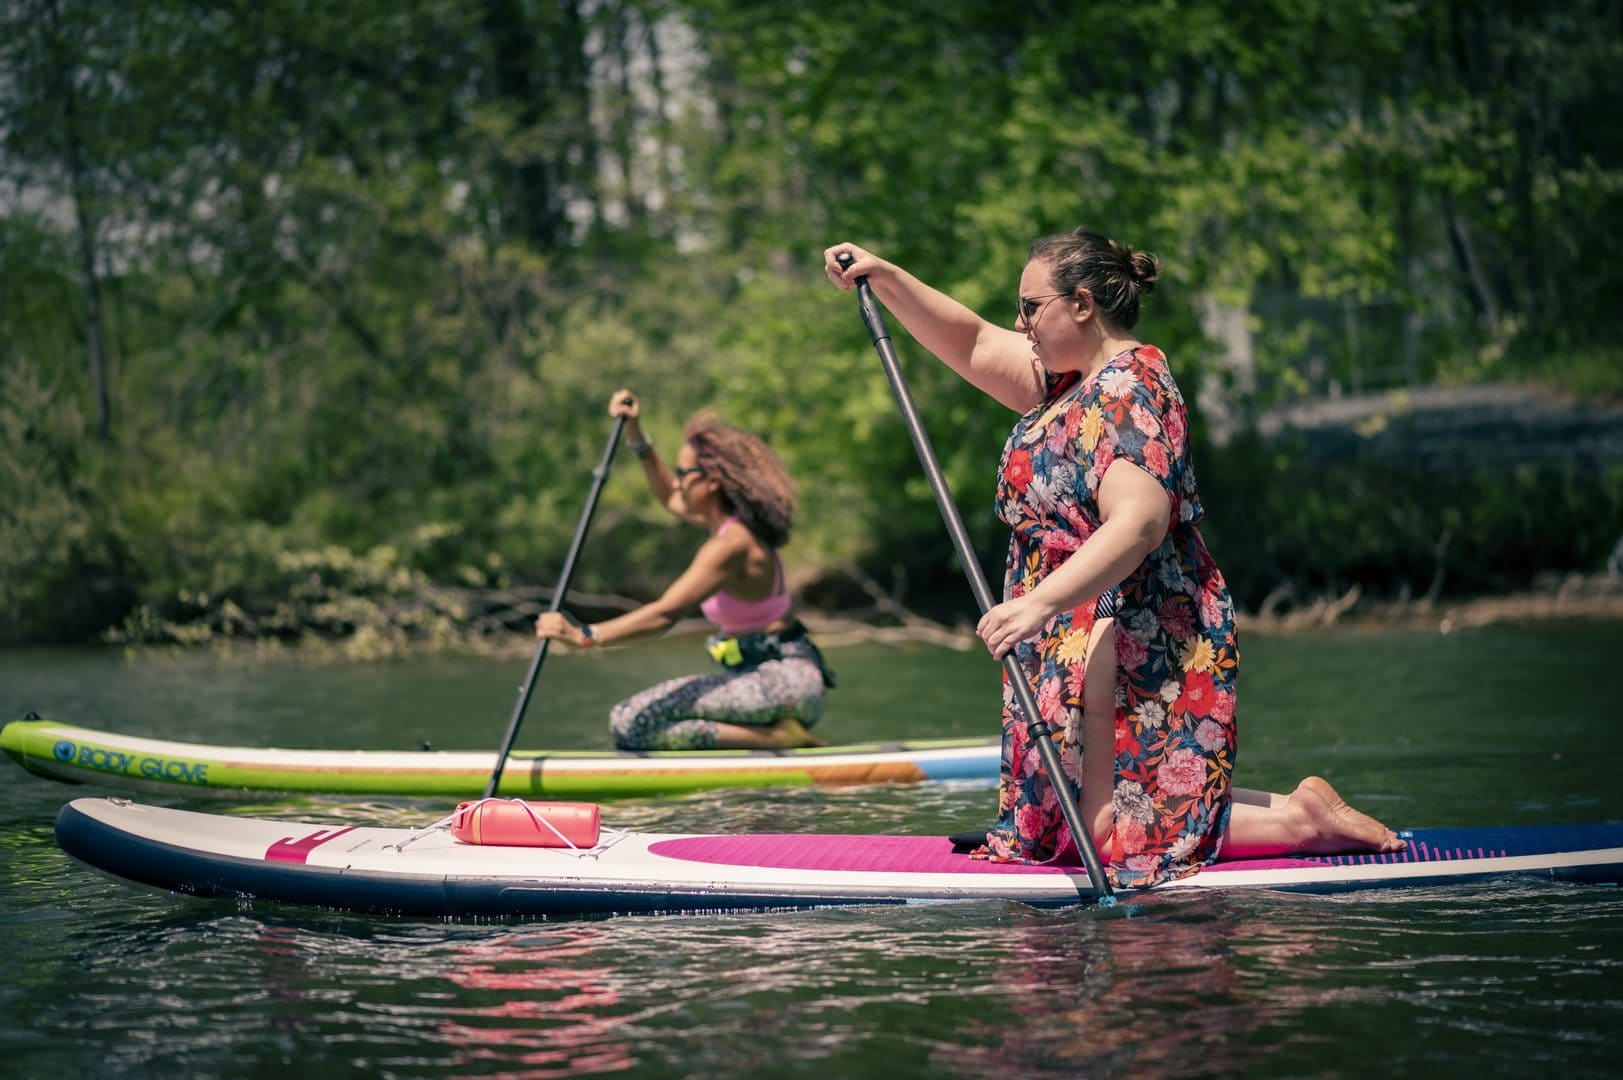 Two women kneeling on paddle boards on a lake